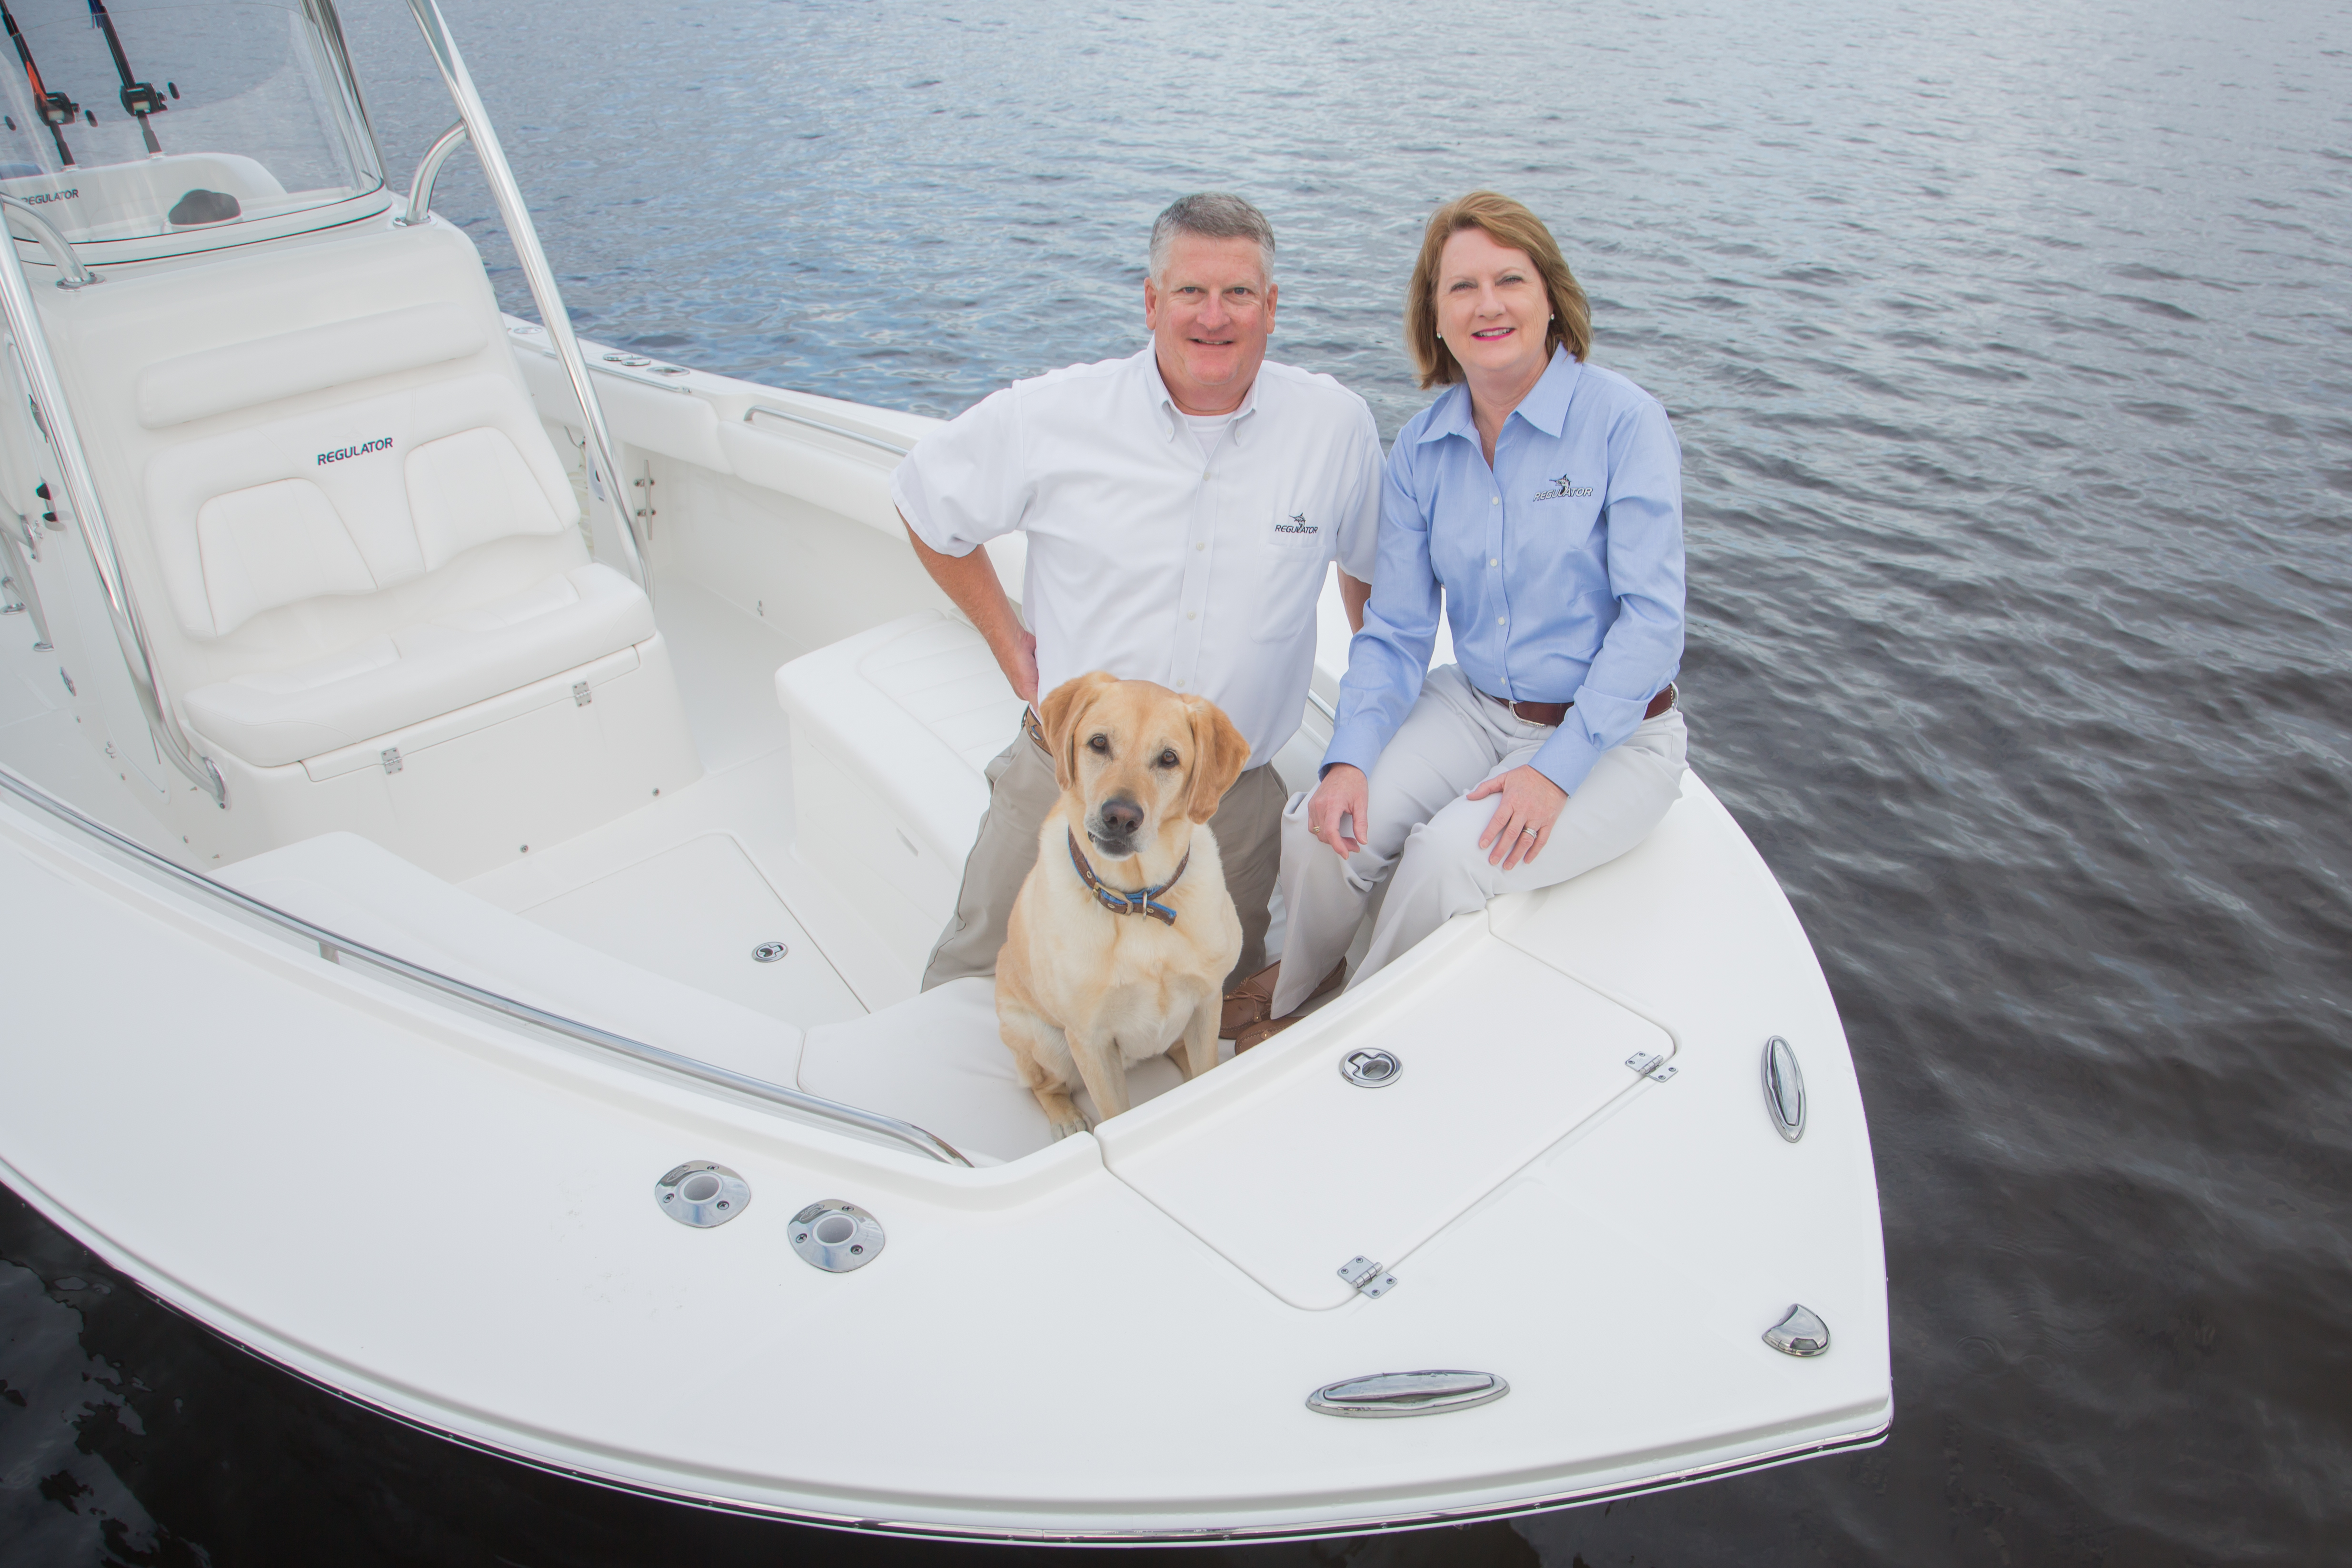 Regulator Marine: Building Boats and Community in Edenton, NC